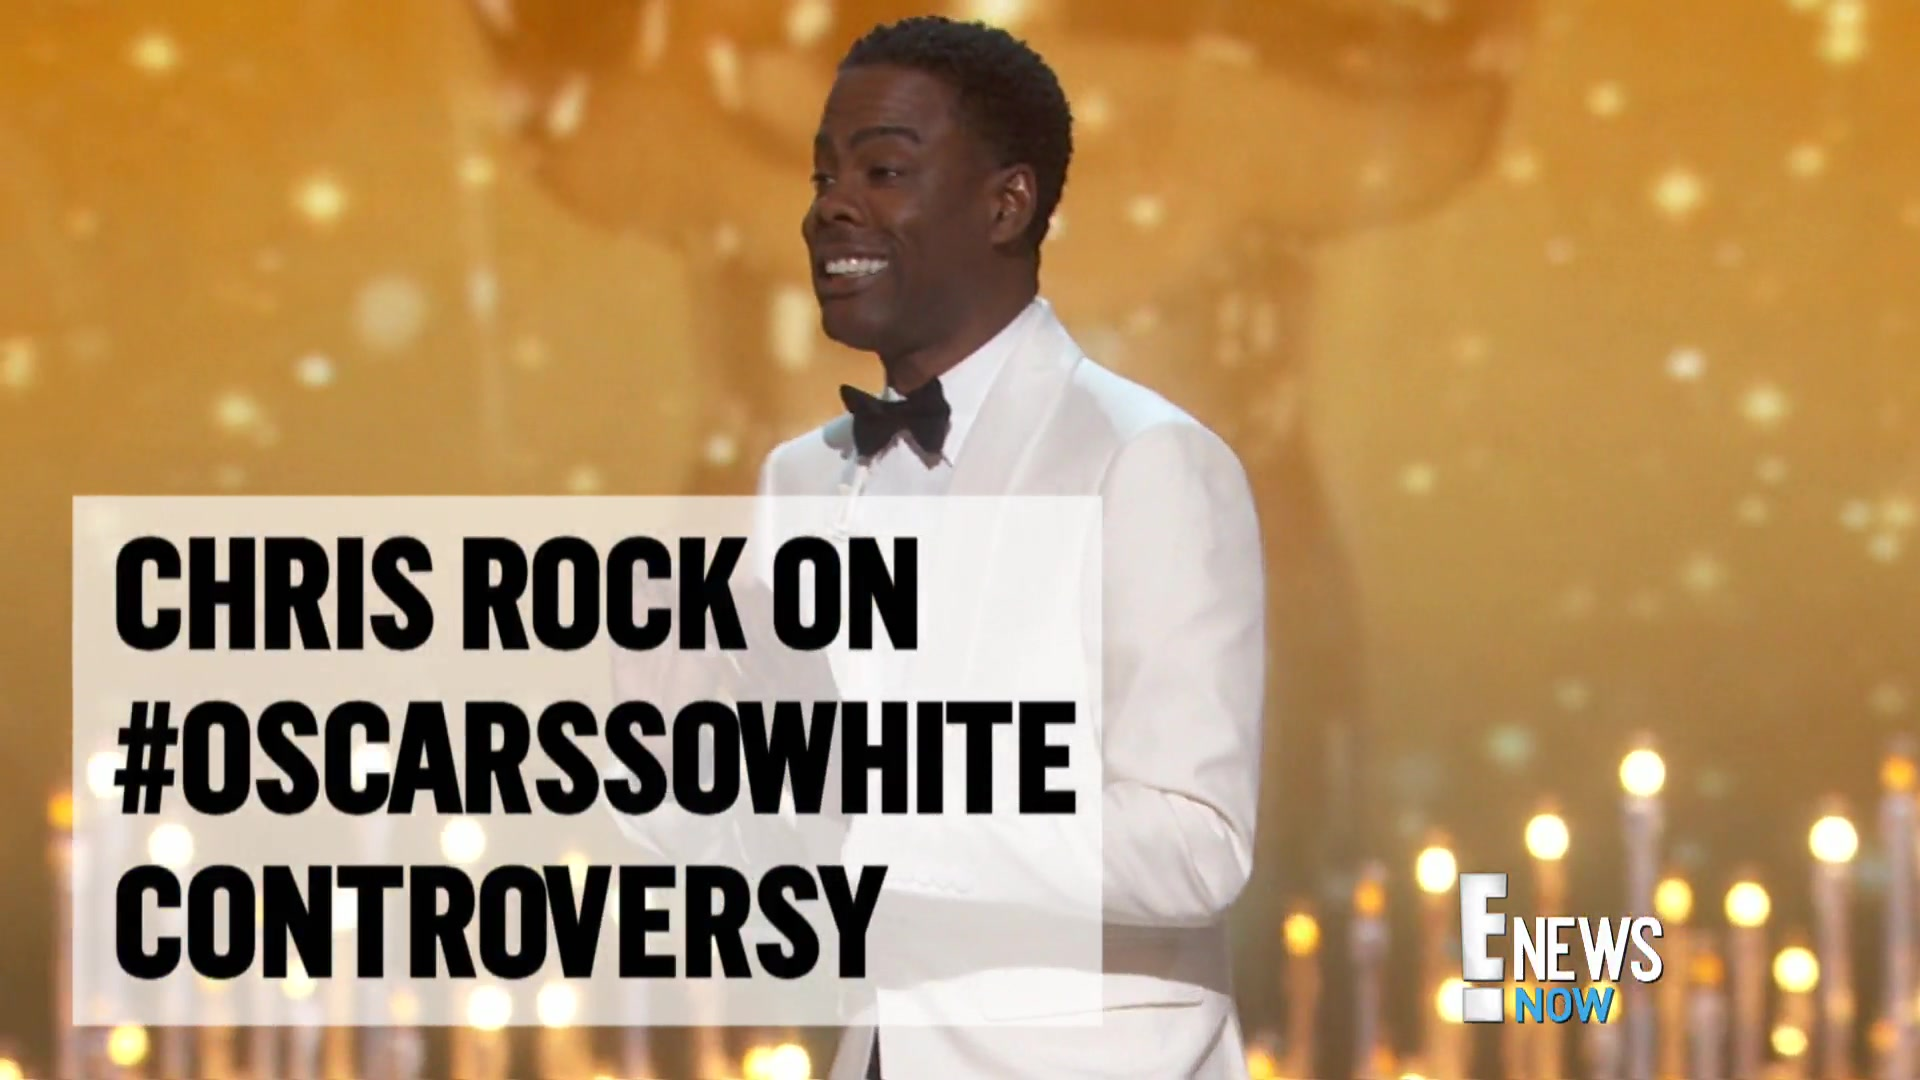 Chris Rock Talks #OscarsSoWhite Controversy